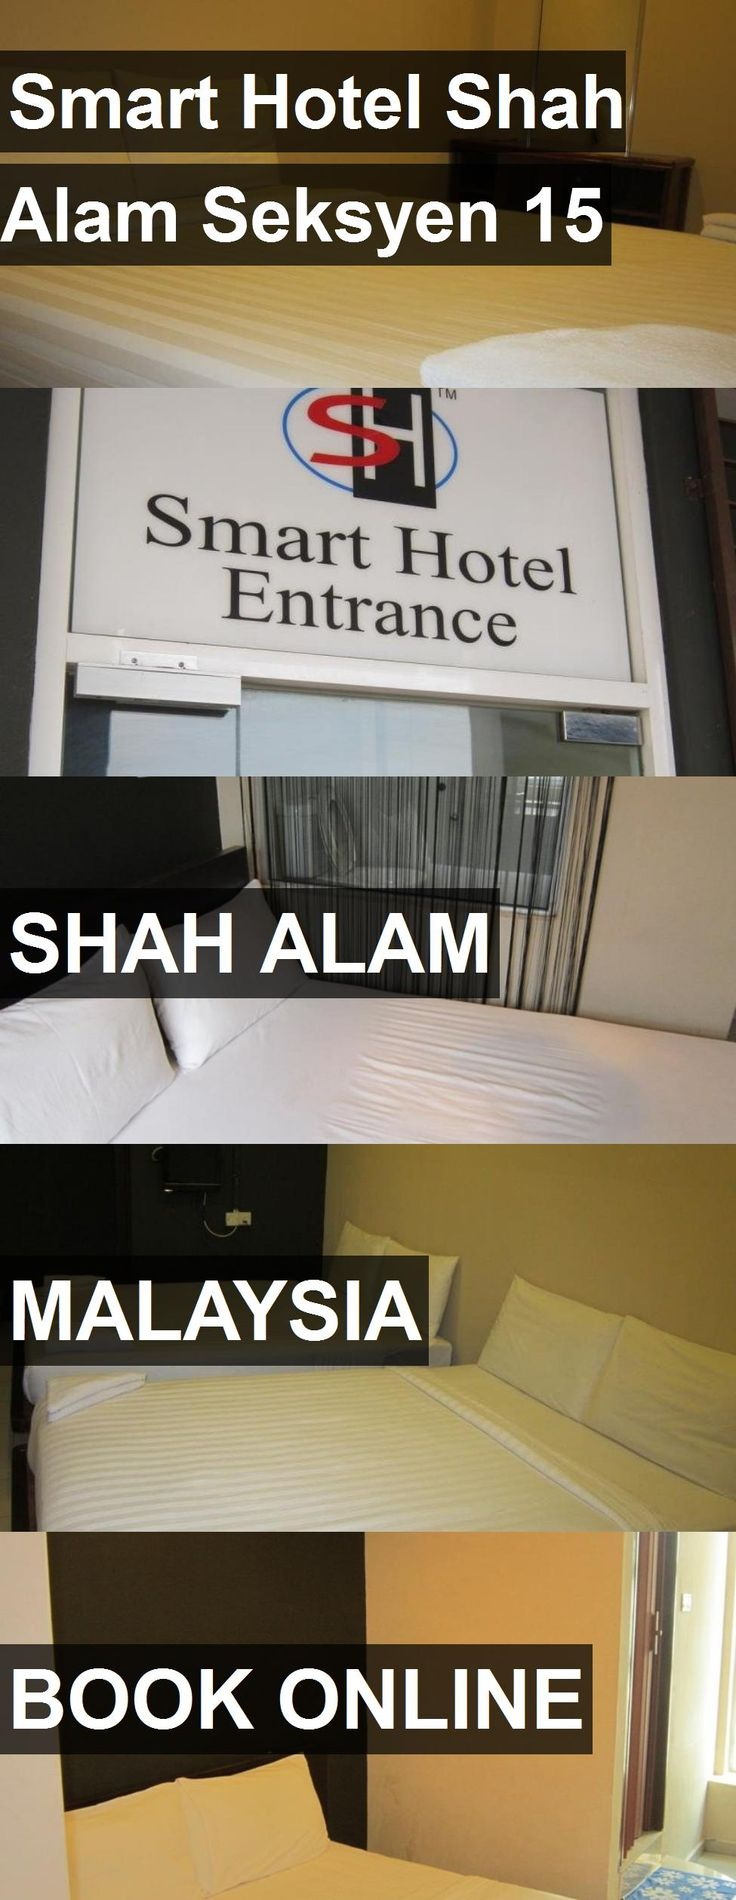 Hotel Smart Hotel Shah Alam Seksyen 15 in Shah Alam, Malaysia. For more information, photos, reviews and best prices please follow the link. #Malaysia #ShahAlam #SmartHotelShahAlamSeksyen15 #hotel #travel #vacation